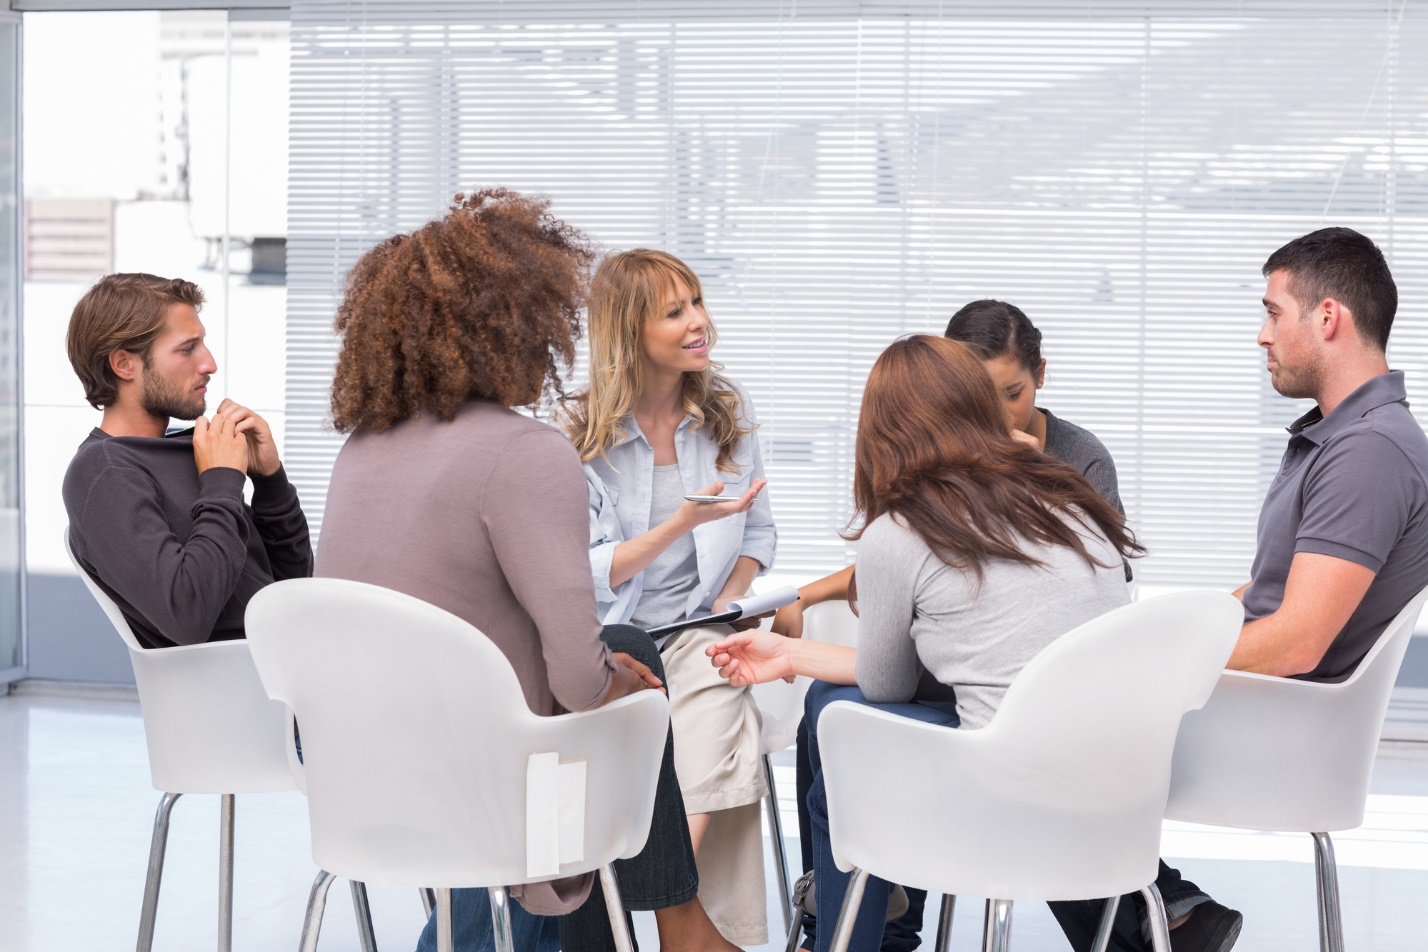 A group of people sitting in chairs Description automatically generated with medium confidence